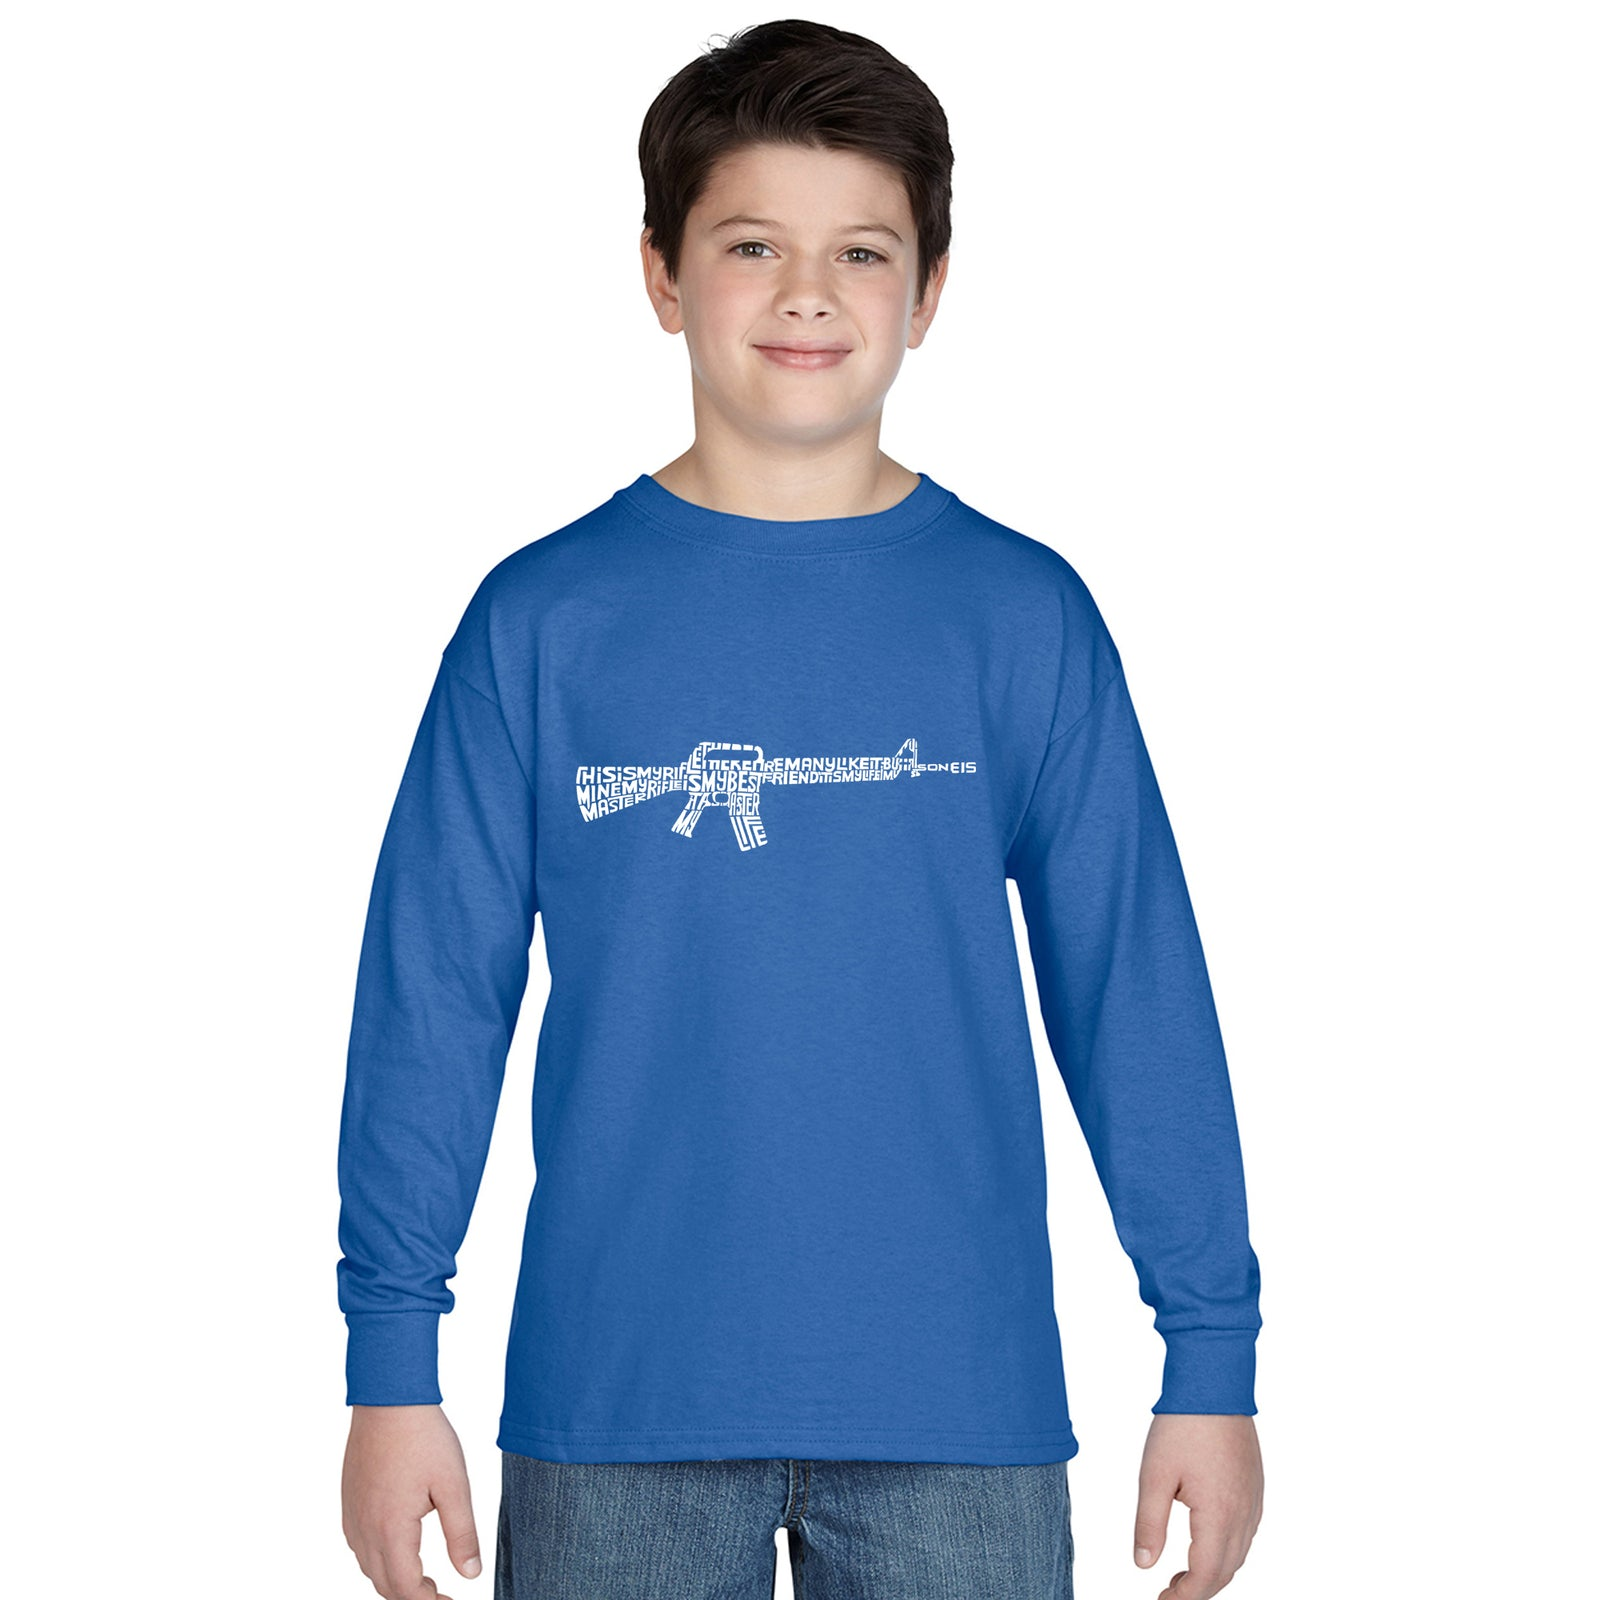 Boy's Long Sleeve - RIFLEMANS CREED